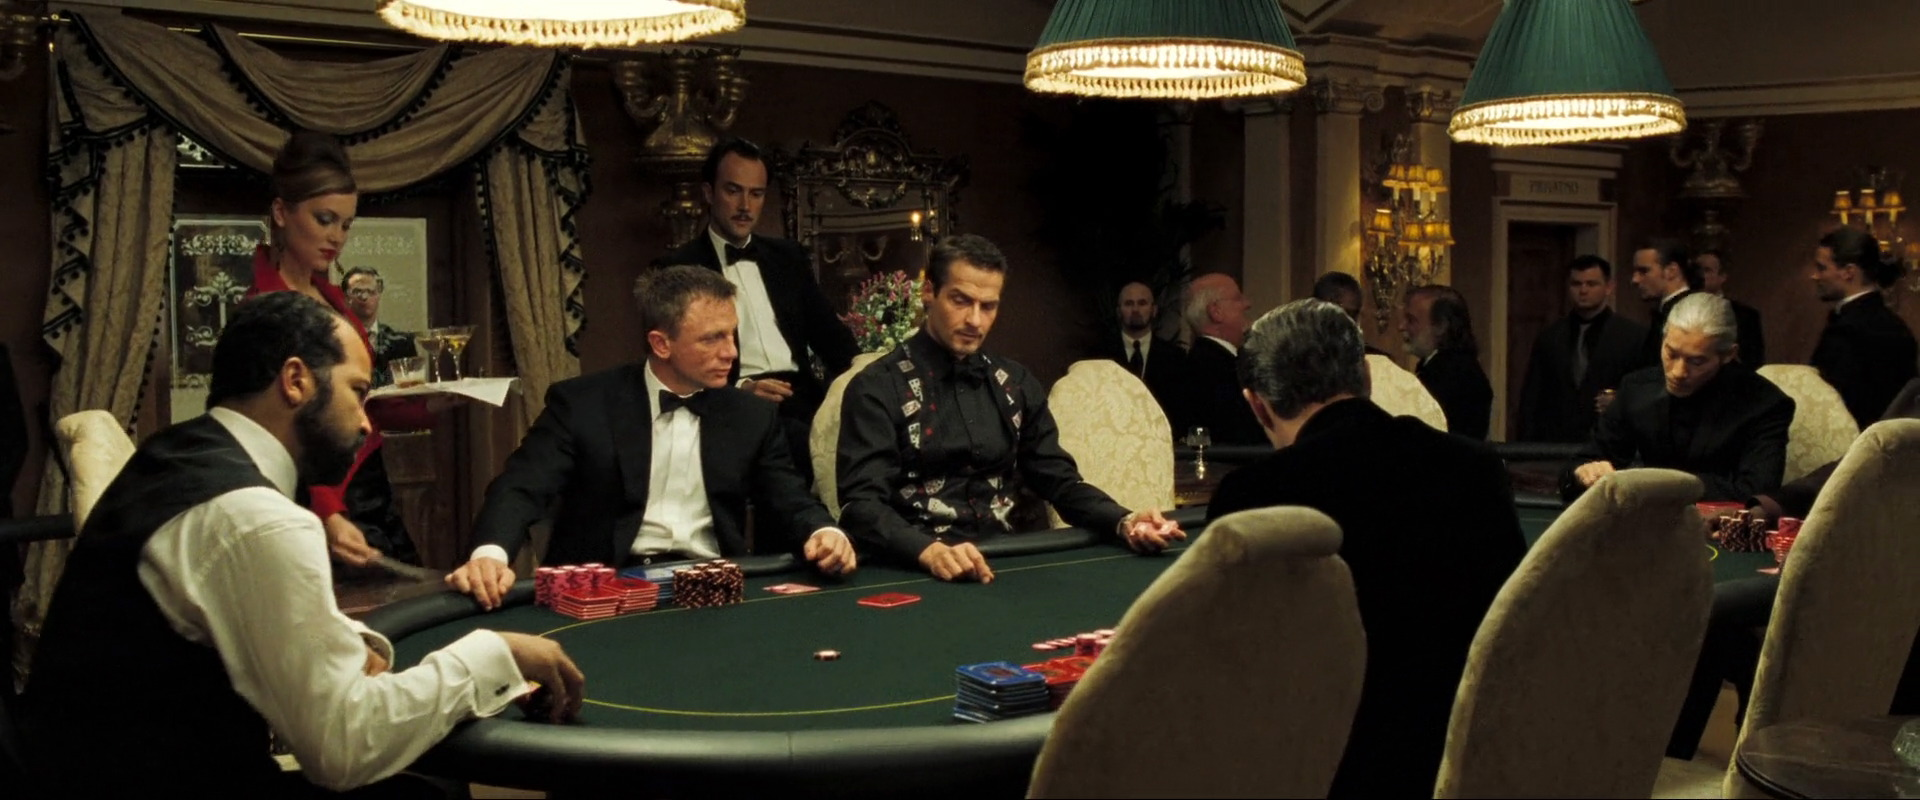 CASINO ROYALE MOVIE ONLINE WITH ENGLISH SUBTITLES